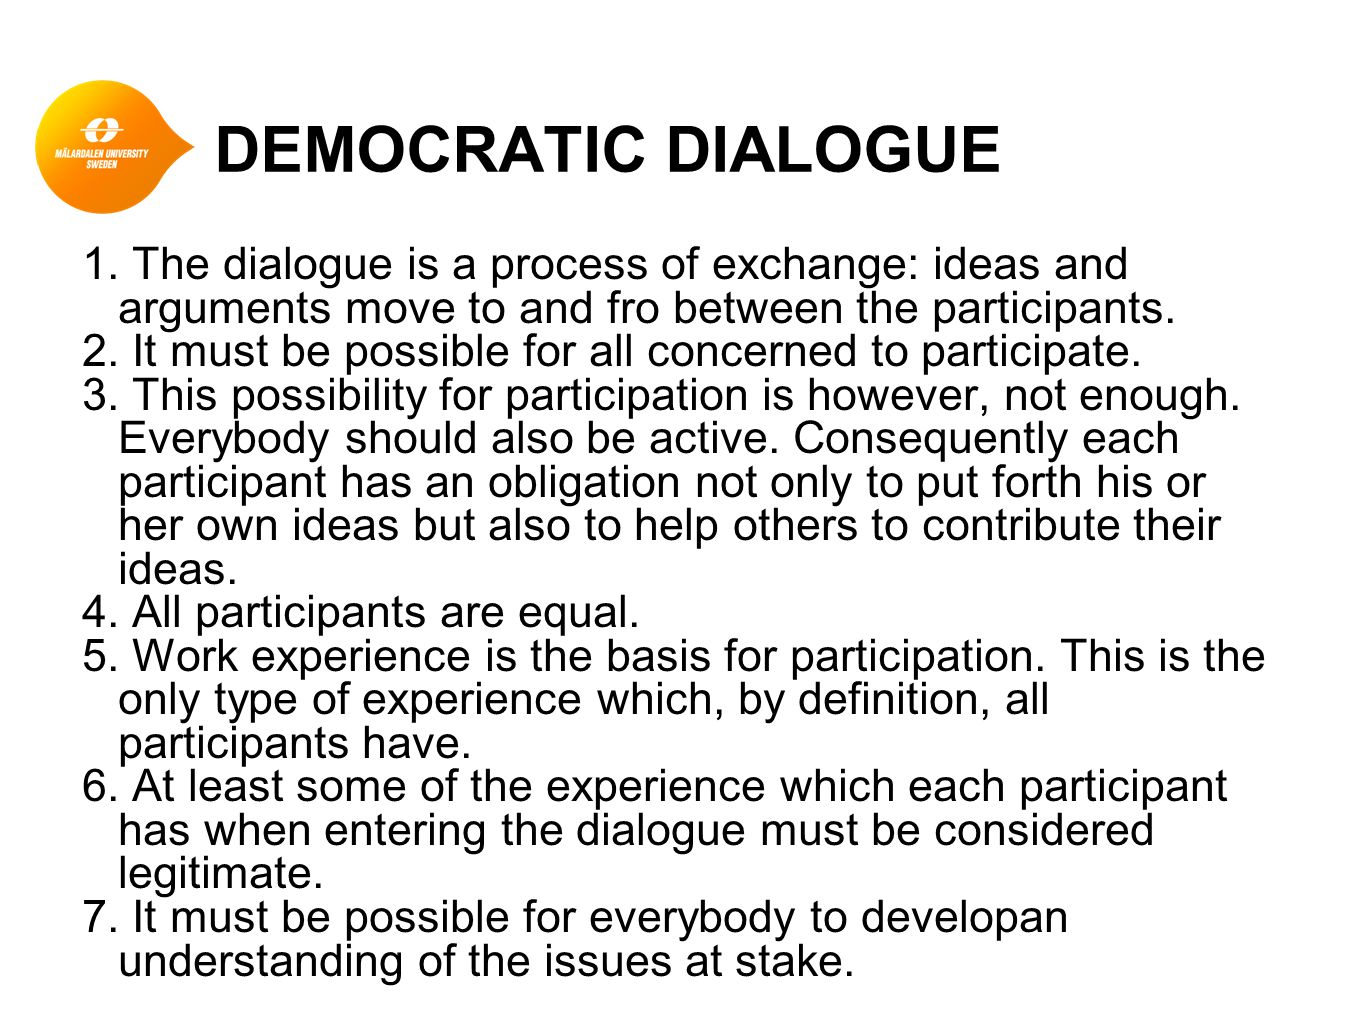 Democratic dialogue 8.All arguments which pertain to the issues under discussion are legitimate.